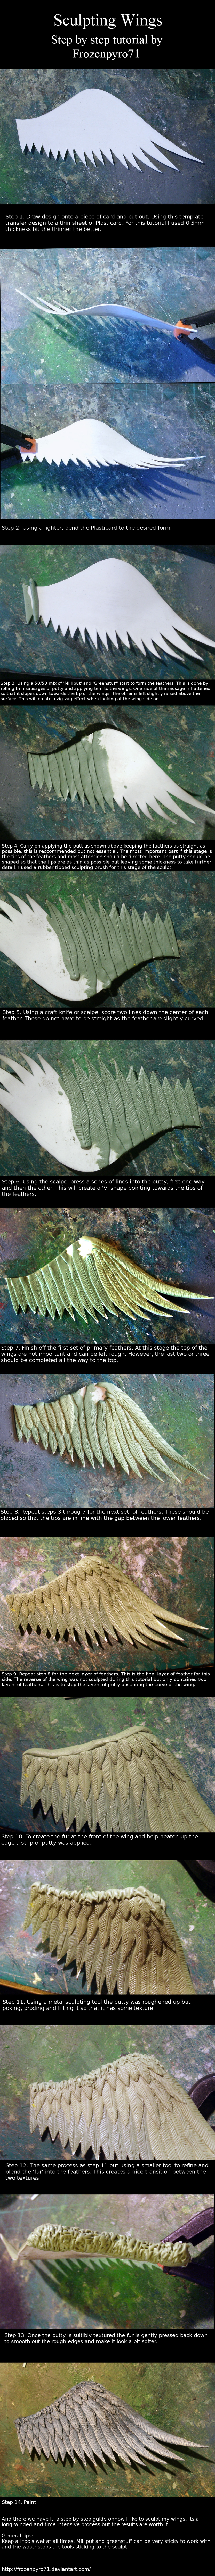 A small step-by-step guide on how I sculpt a feathered wing. This wing is a part of a harpy sculpture I'm doing. The white stuff in no.6 is baby powder that I use to buff and smooth the wax. You ca...